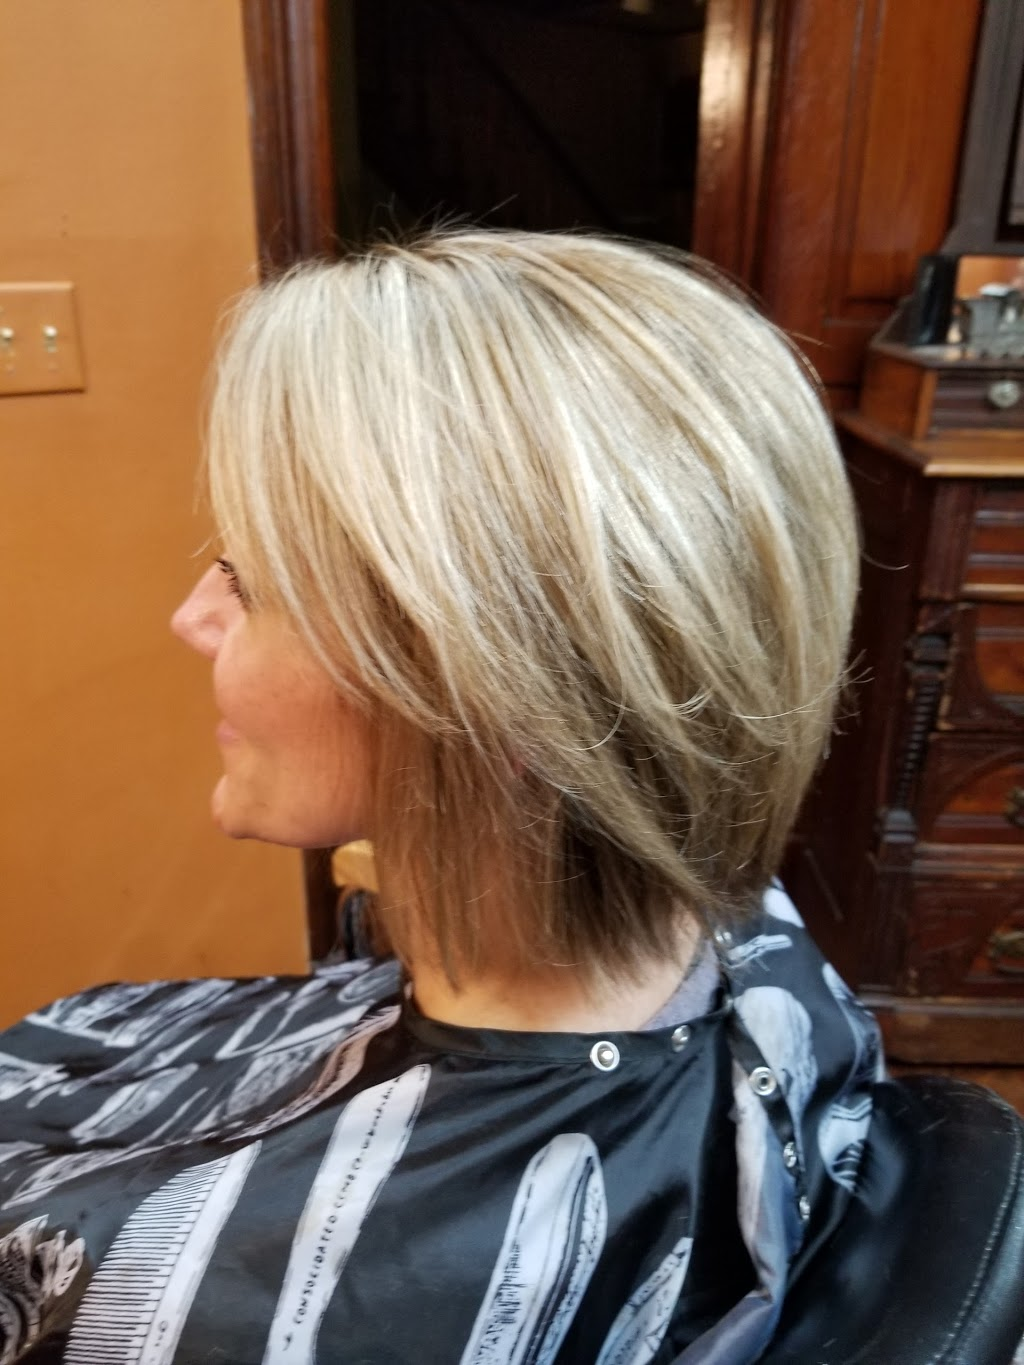 Rejuvenation Station - hair care  | Photo 7 of 10 | Address: 105 Railroad St, Kouts, IN 46347, USA | Phone: (219) 575-3649